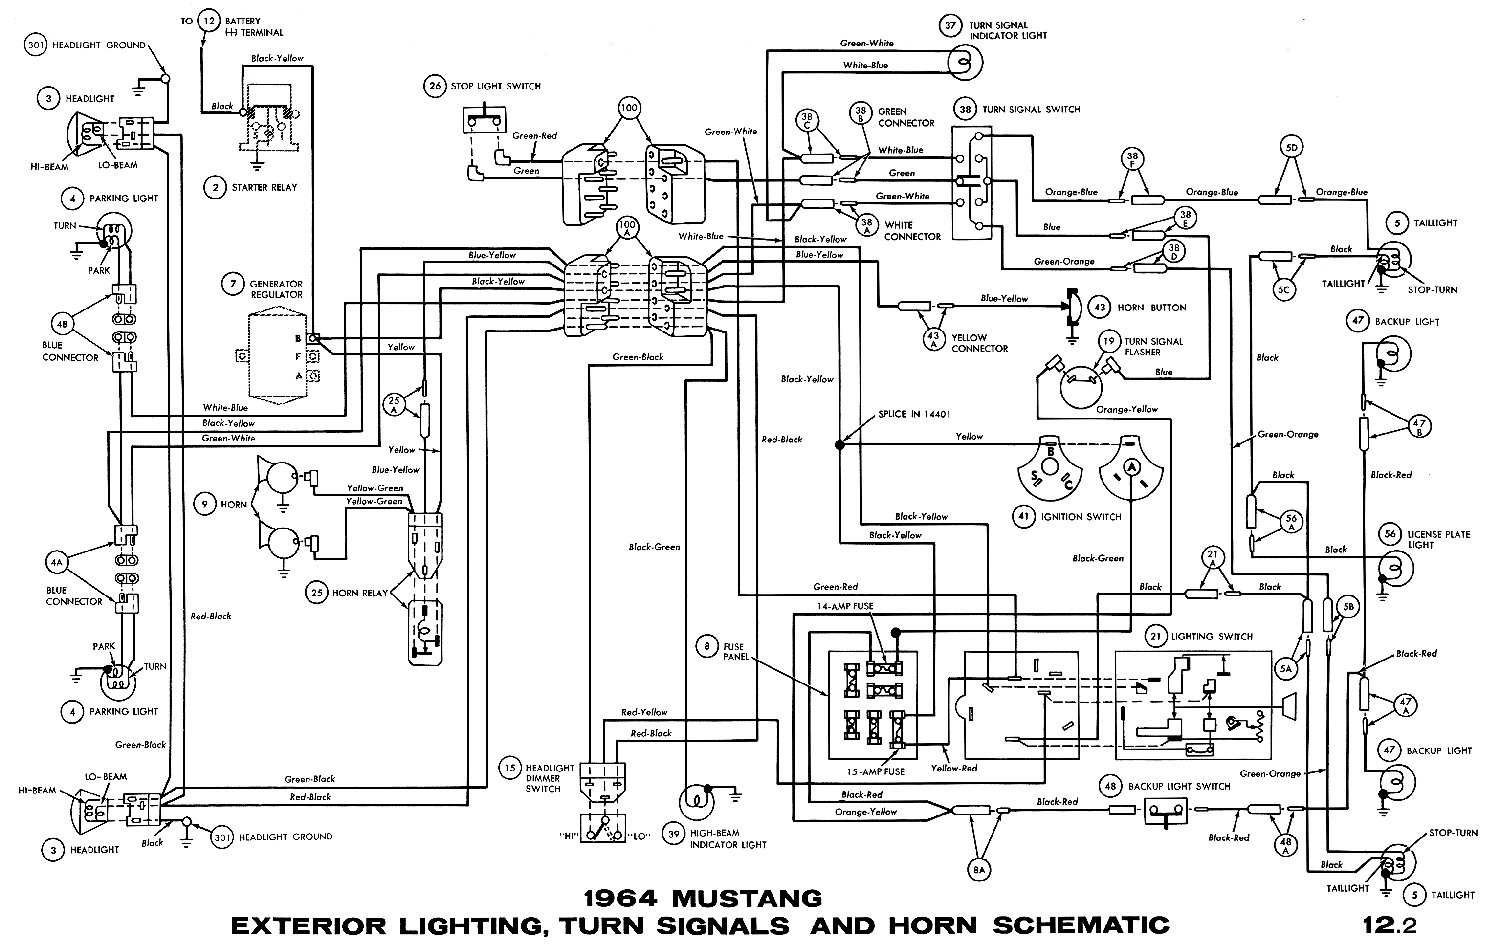 hight resolution of 1964 mustang wiring diagrams average joe restoration